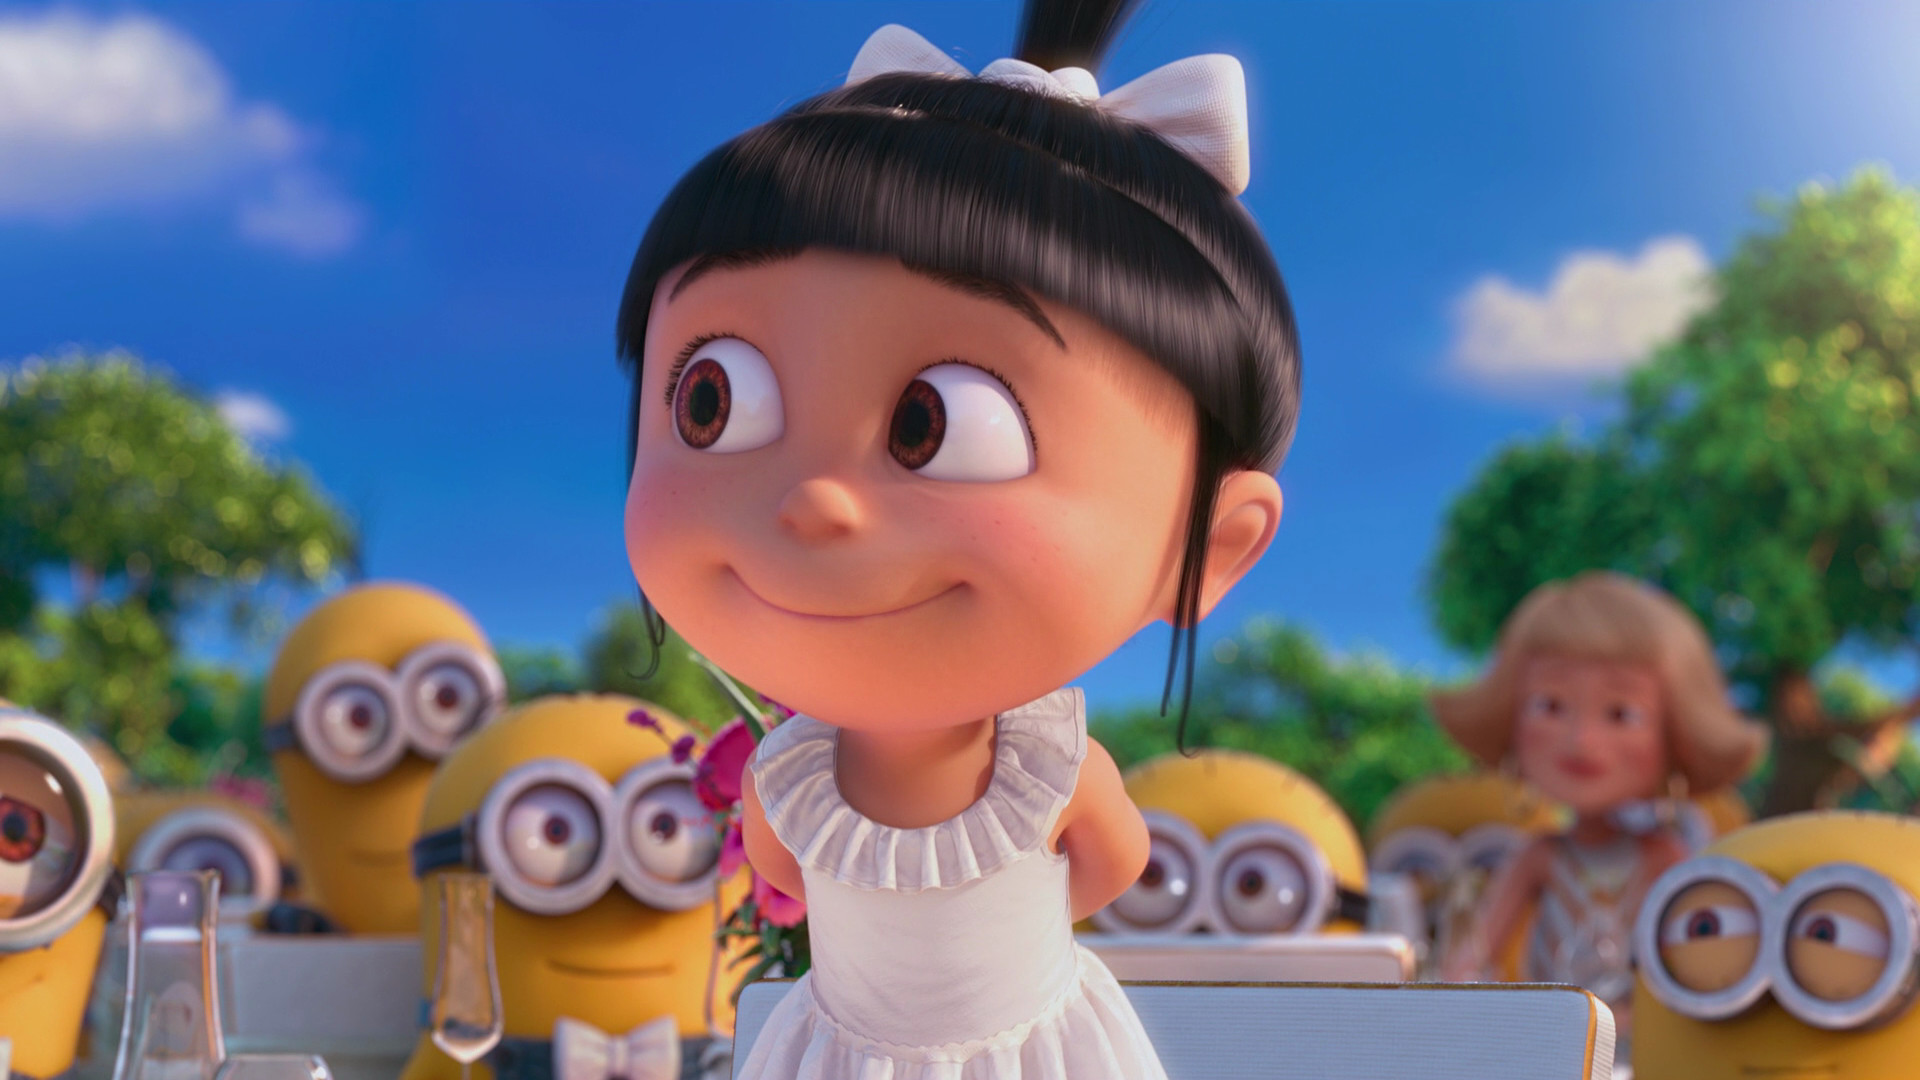 1920x1080 71 Agnes (Despicable Me) HD Wallpapers